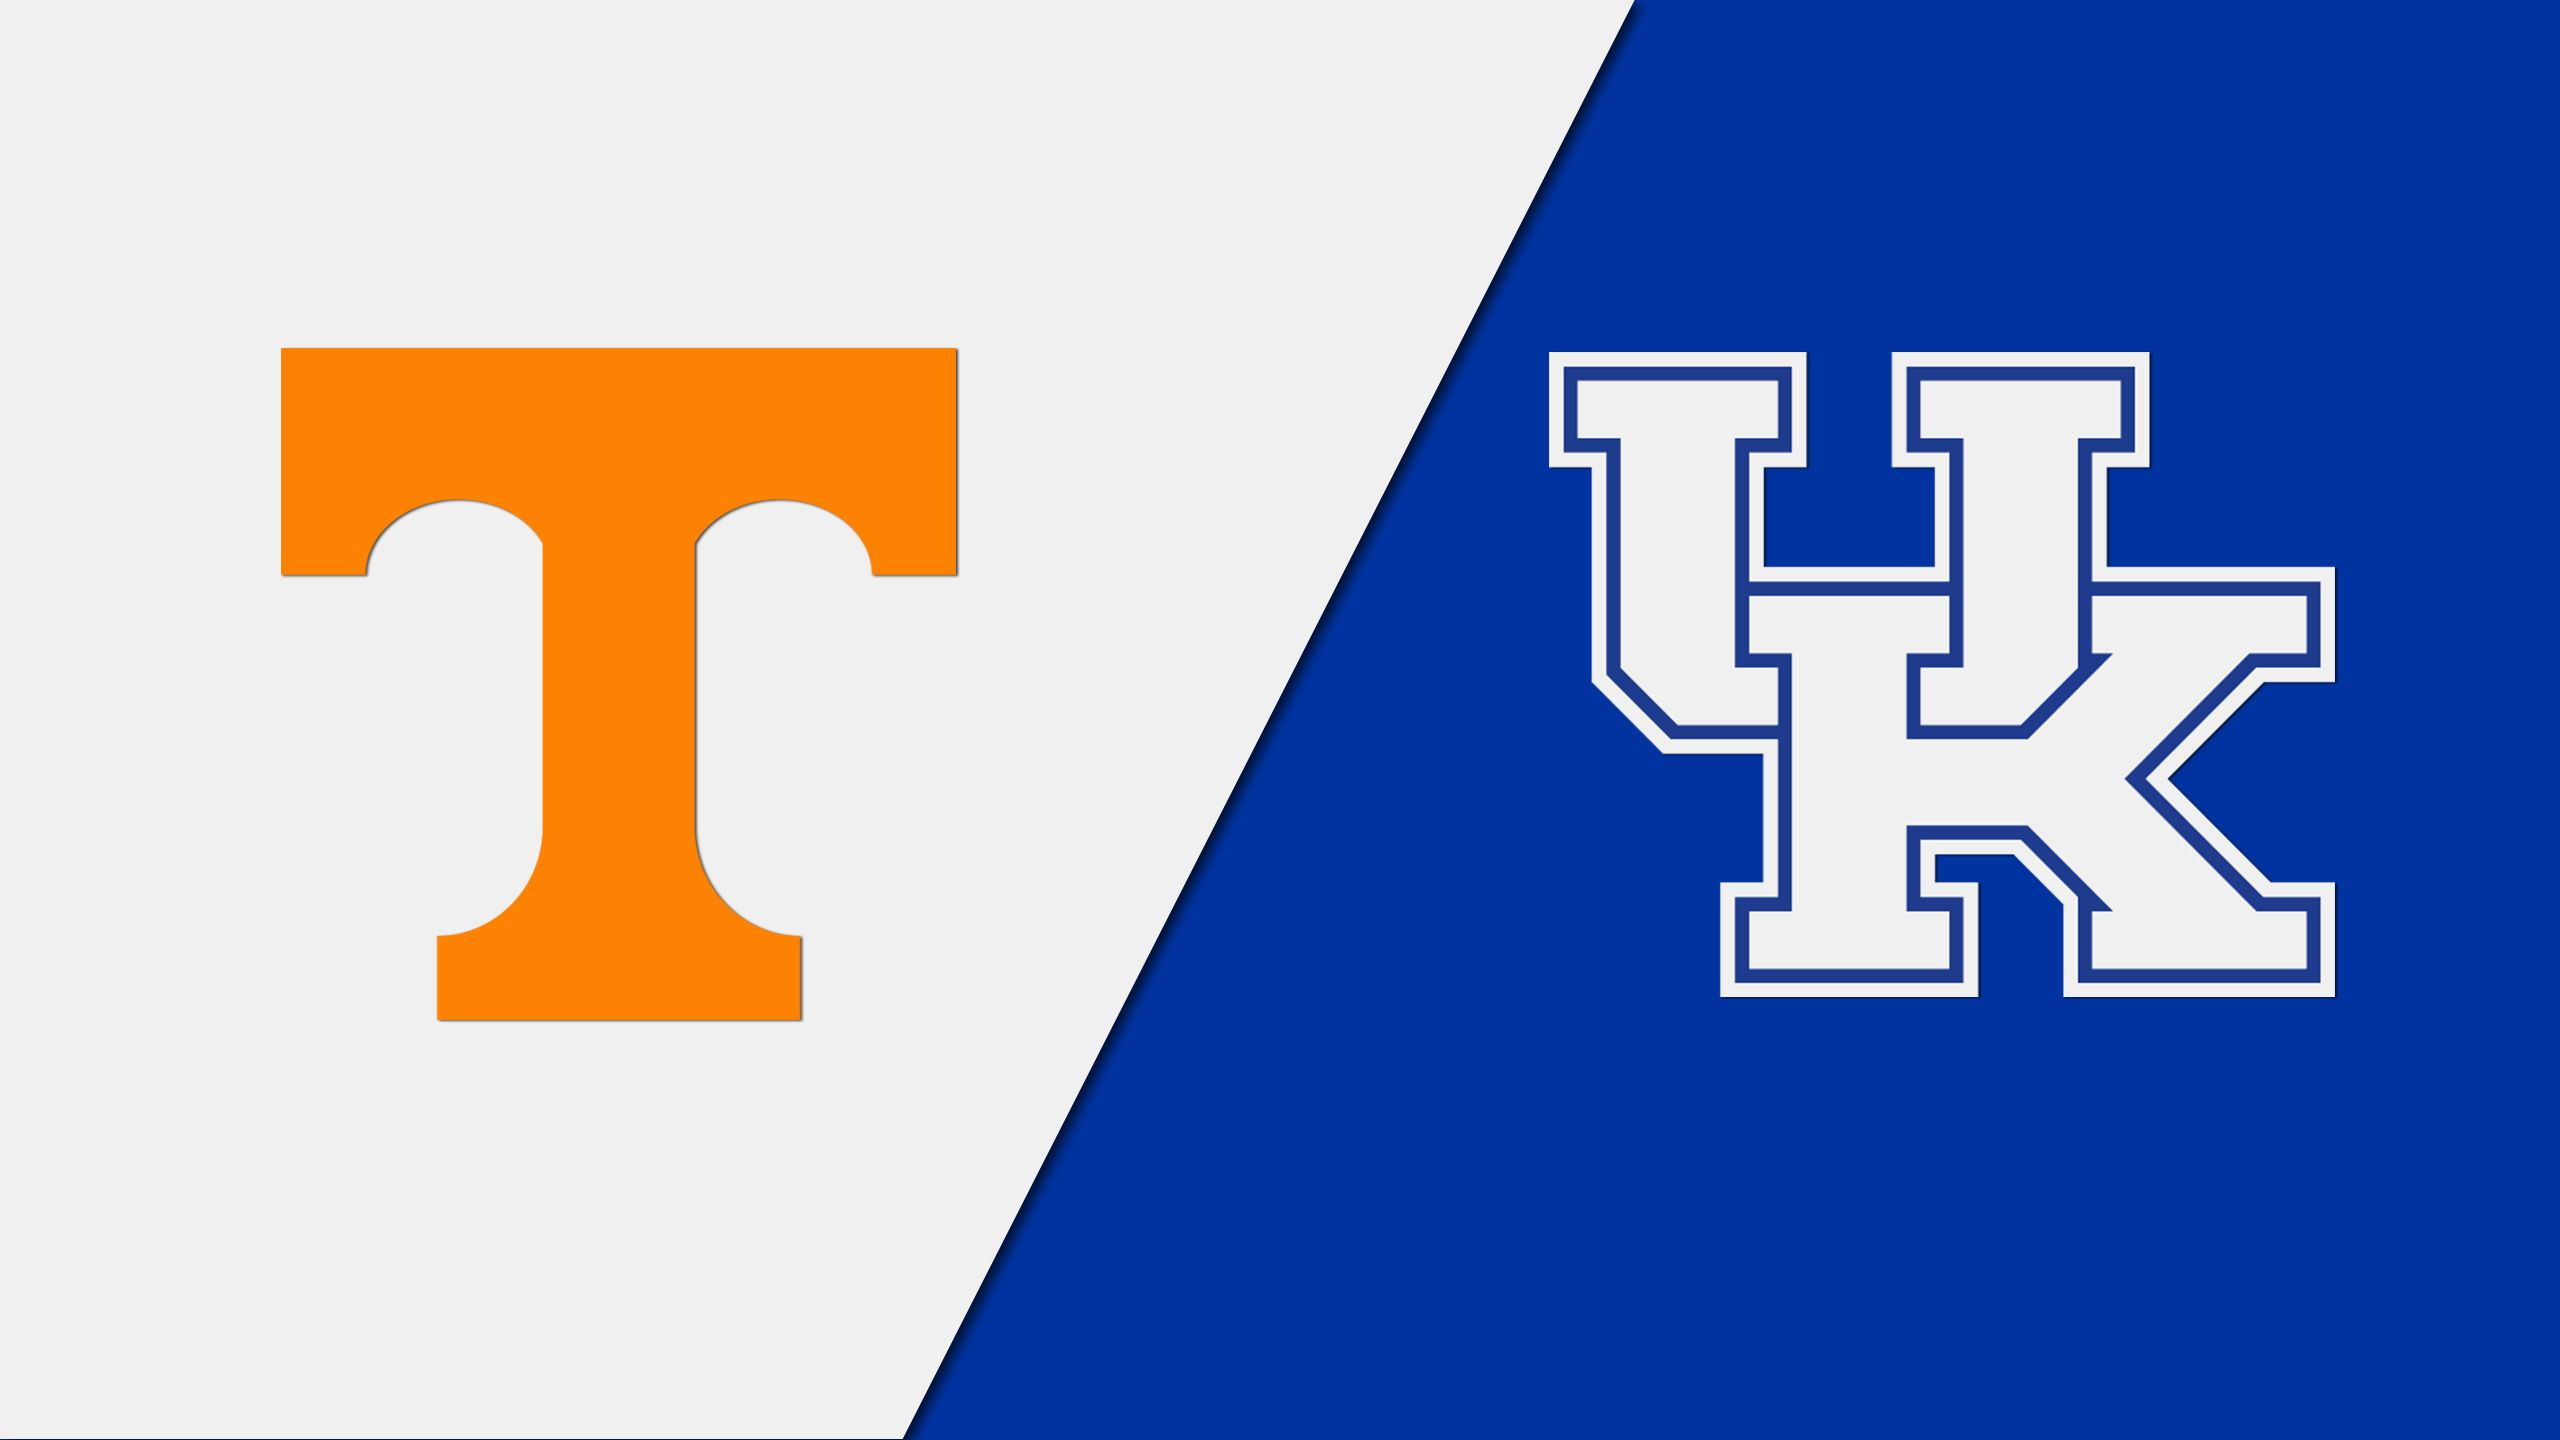 #1 Tennessee vs. #5 Kentucky (M Basketball)